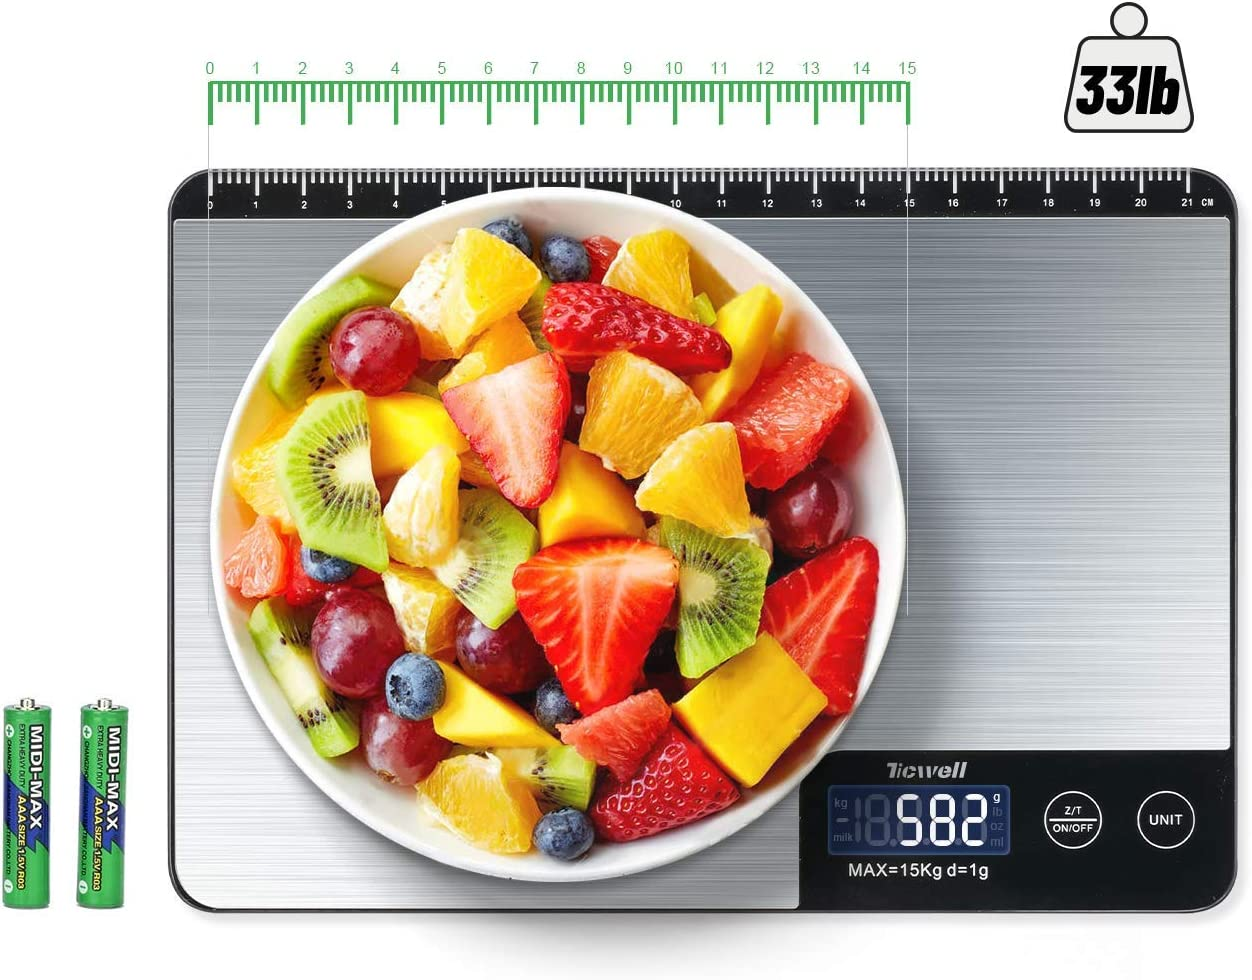 TICWELL Essential Food Scale 33lb Digital Kitchen Scale Weight Grams Oz for Cooking Baking Multifunction Food Scale, 1g Precise Graduation 6 Units LCD Display